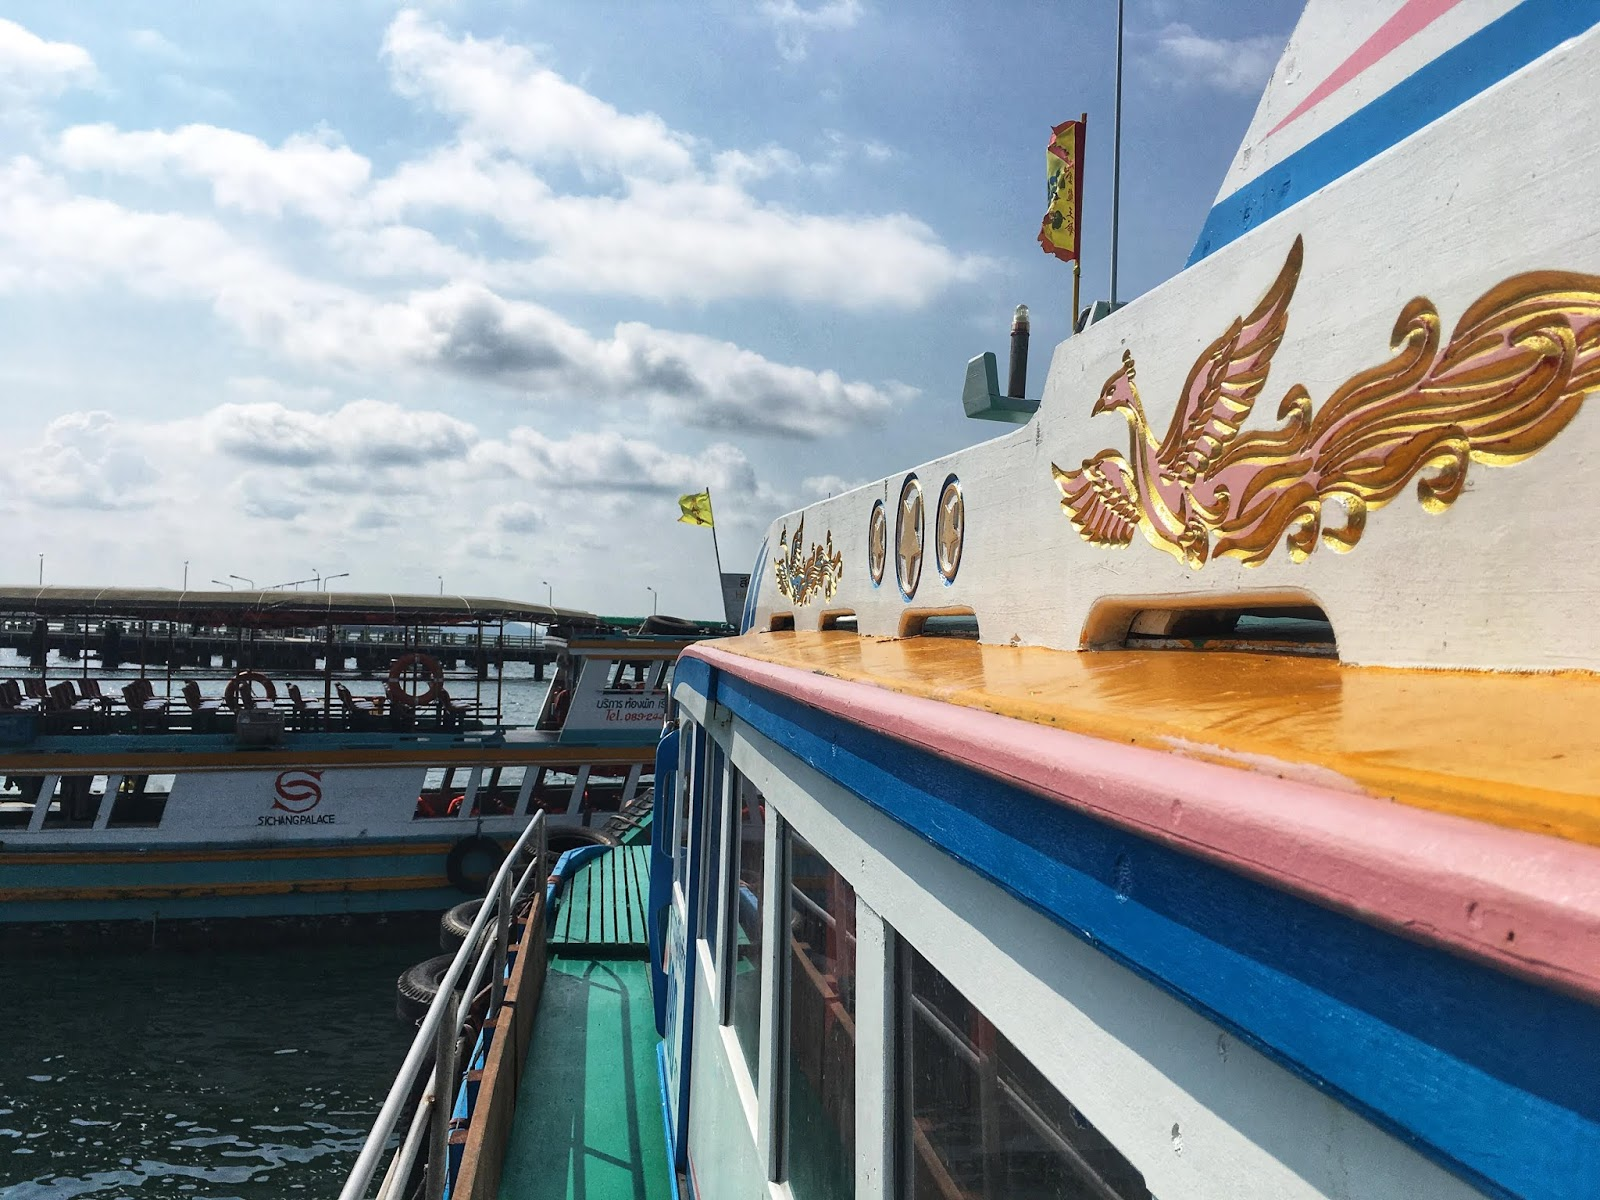 a colorful wooden ferry boat in Thailand